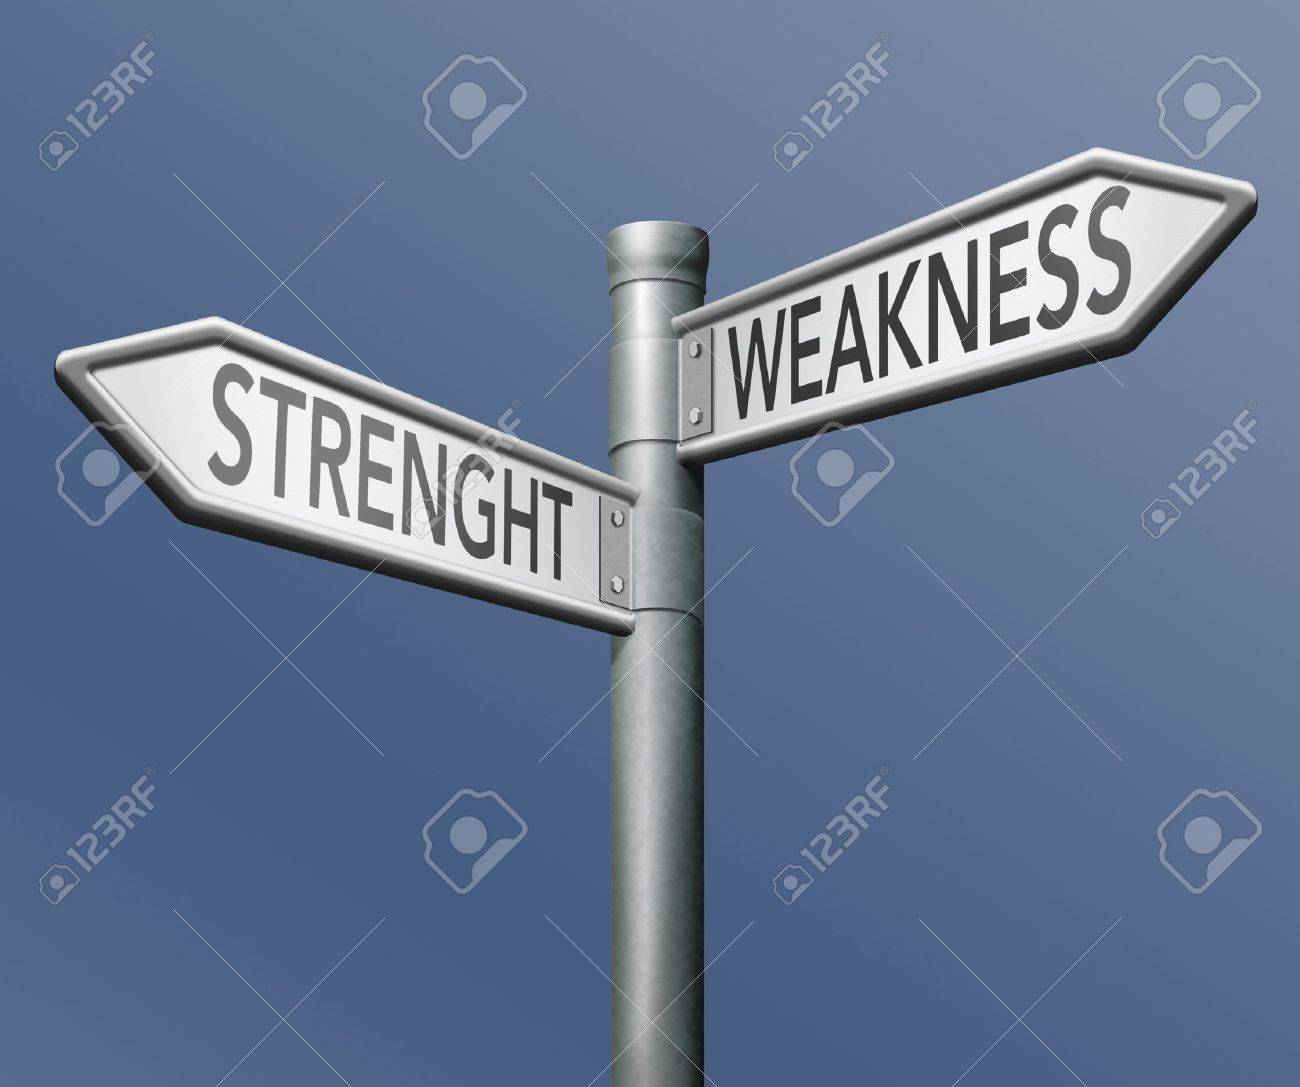 strength or weakness overcome tham and analise potential roadsign stock photo strength or weakness overcome tham and analise potential roadsign text